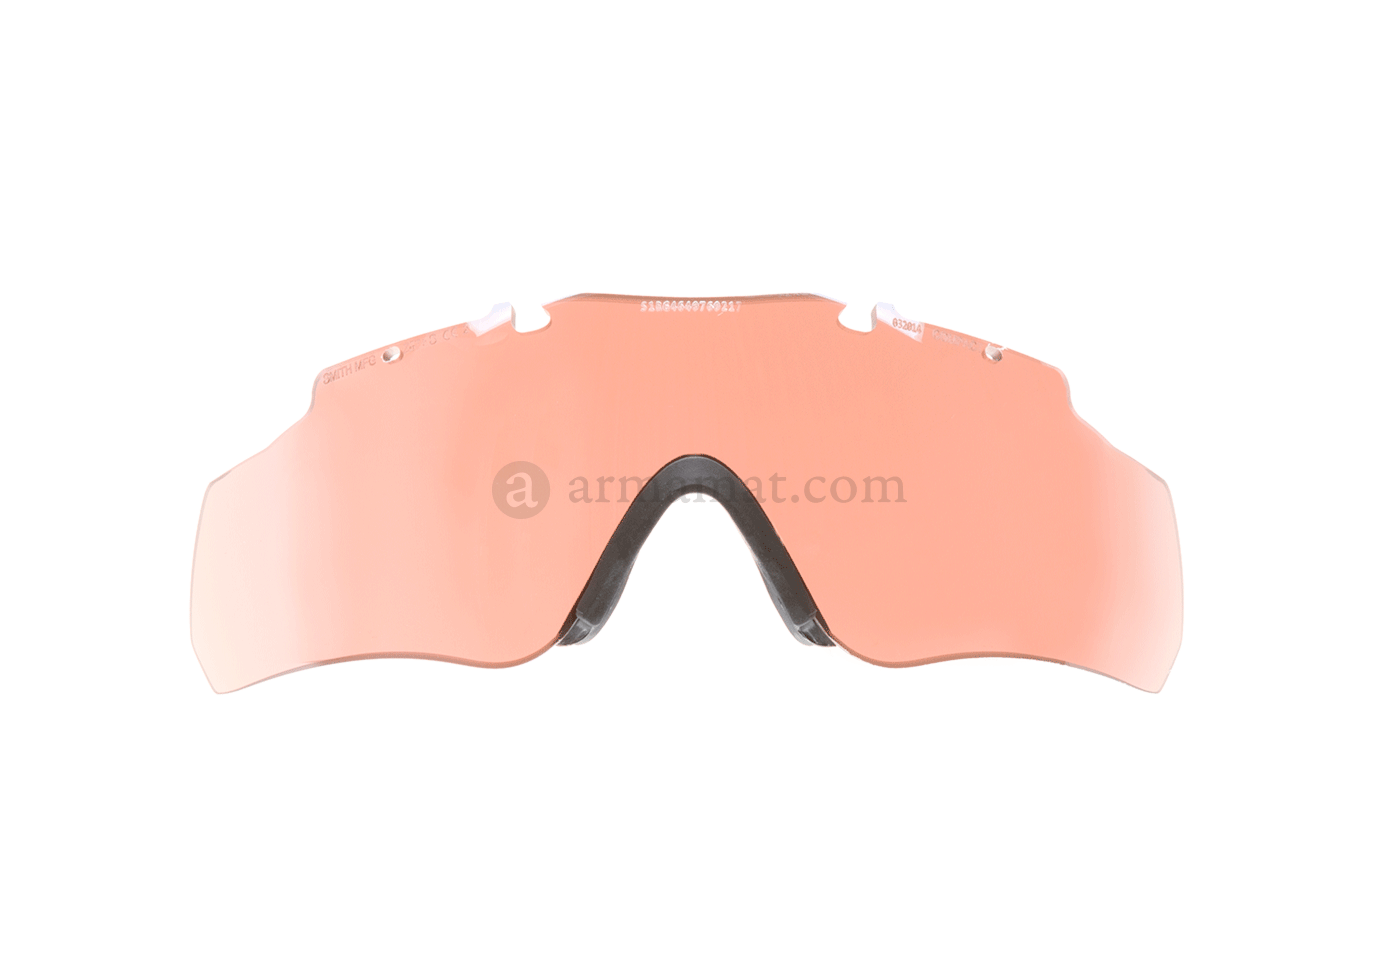 a4a9f1df36 Smith Aegis Replacement Lenses Uk